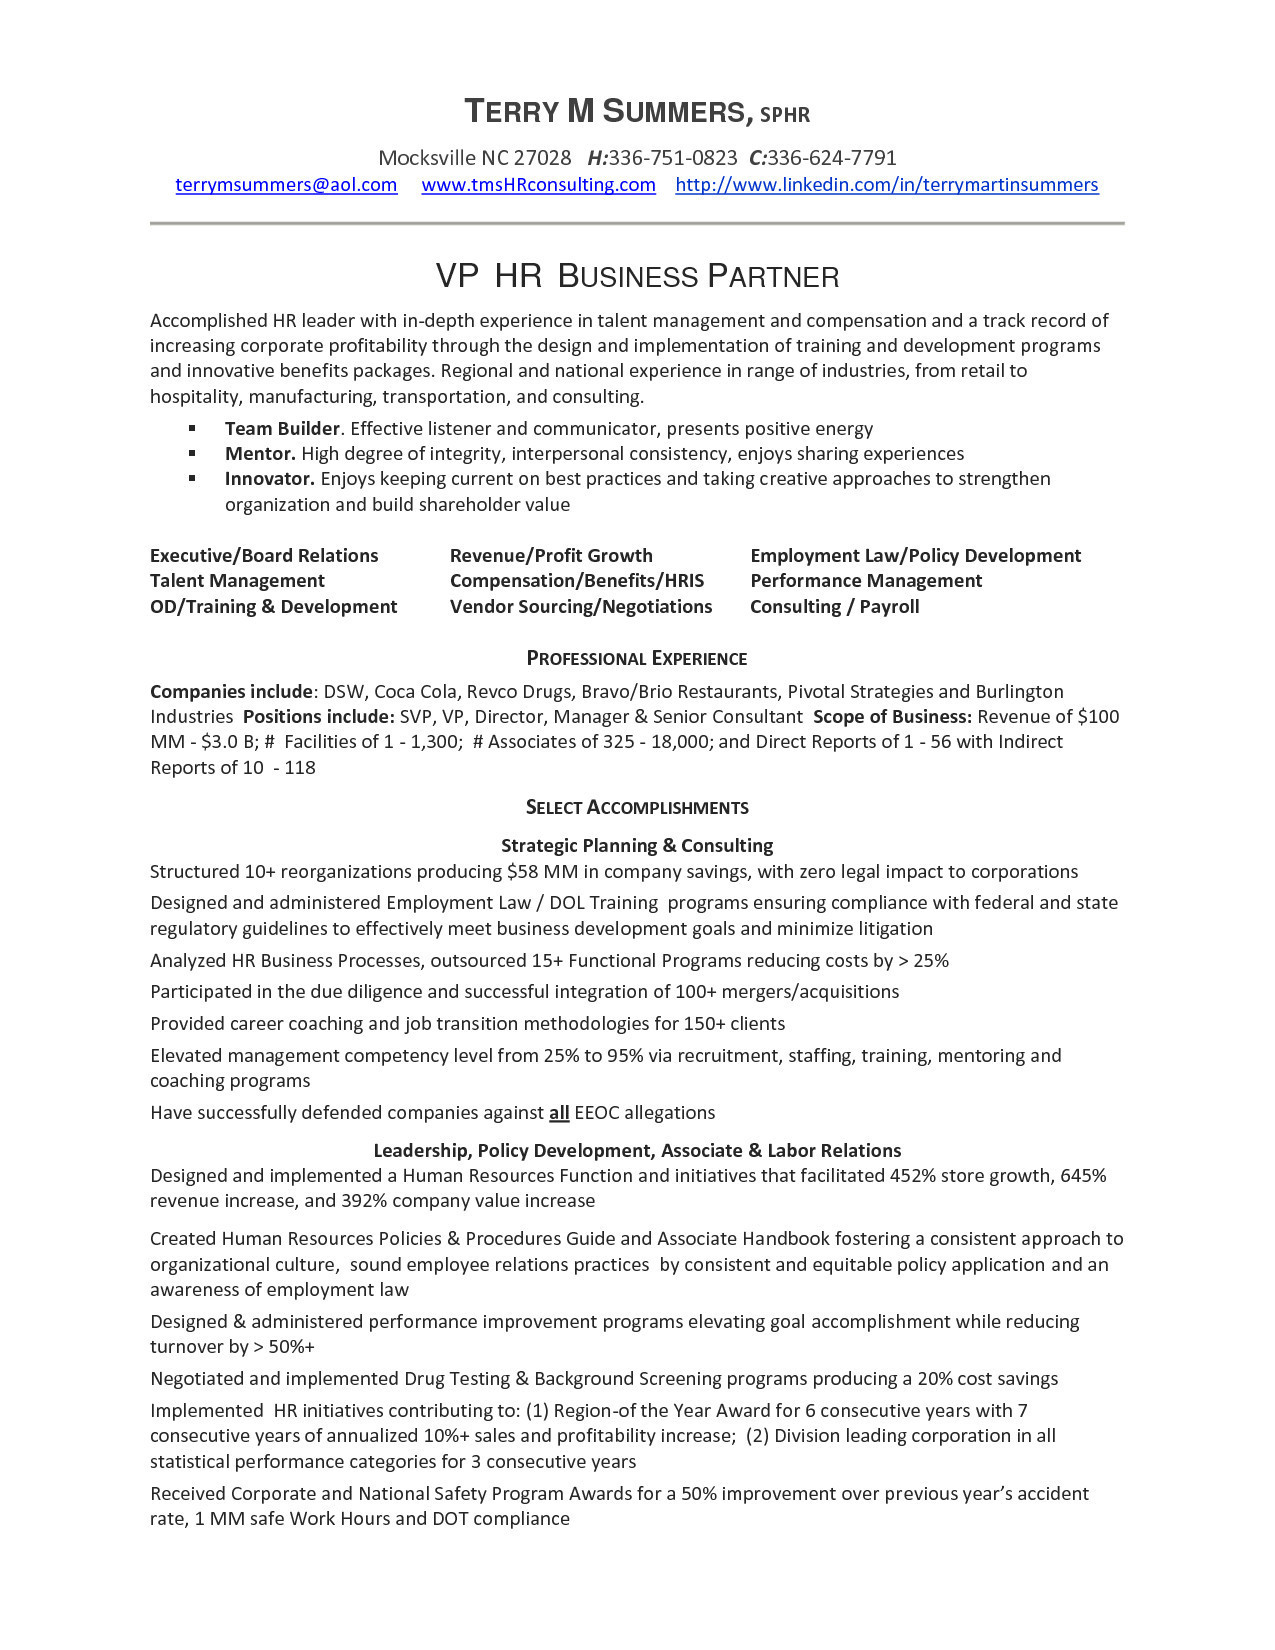 Entry Level Human Resources Resume - Human Resources Sample Resume Best Entry Level Human Resources